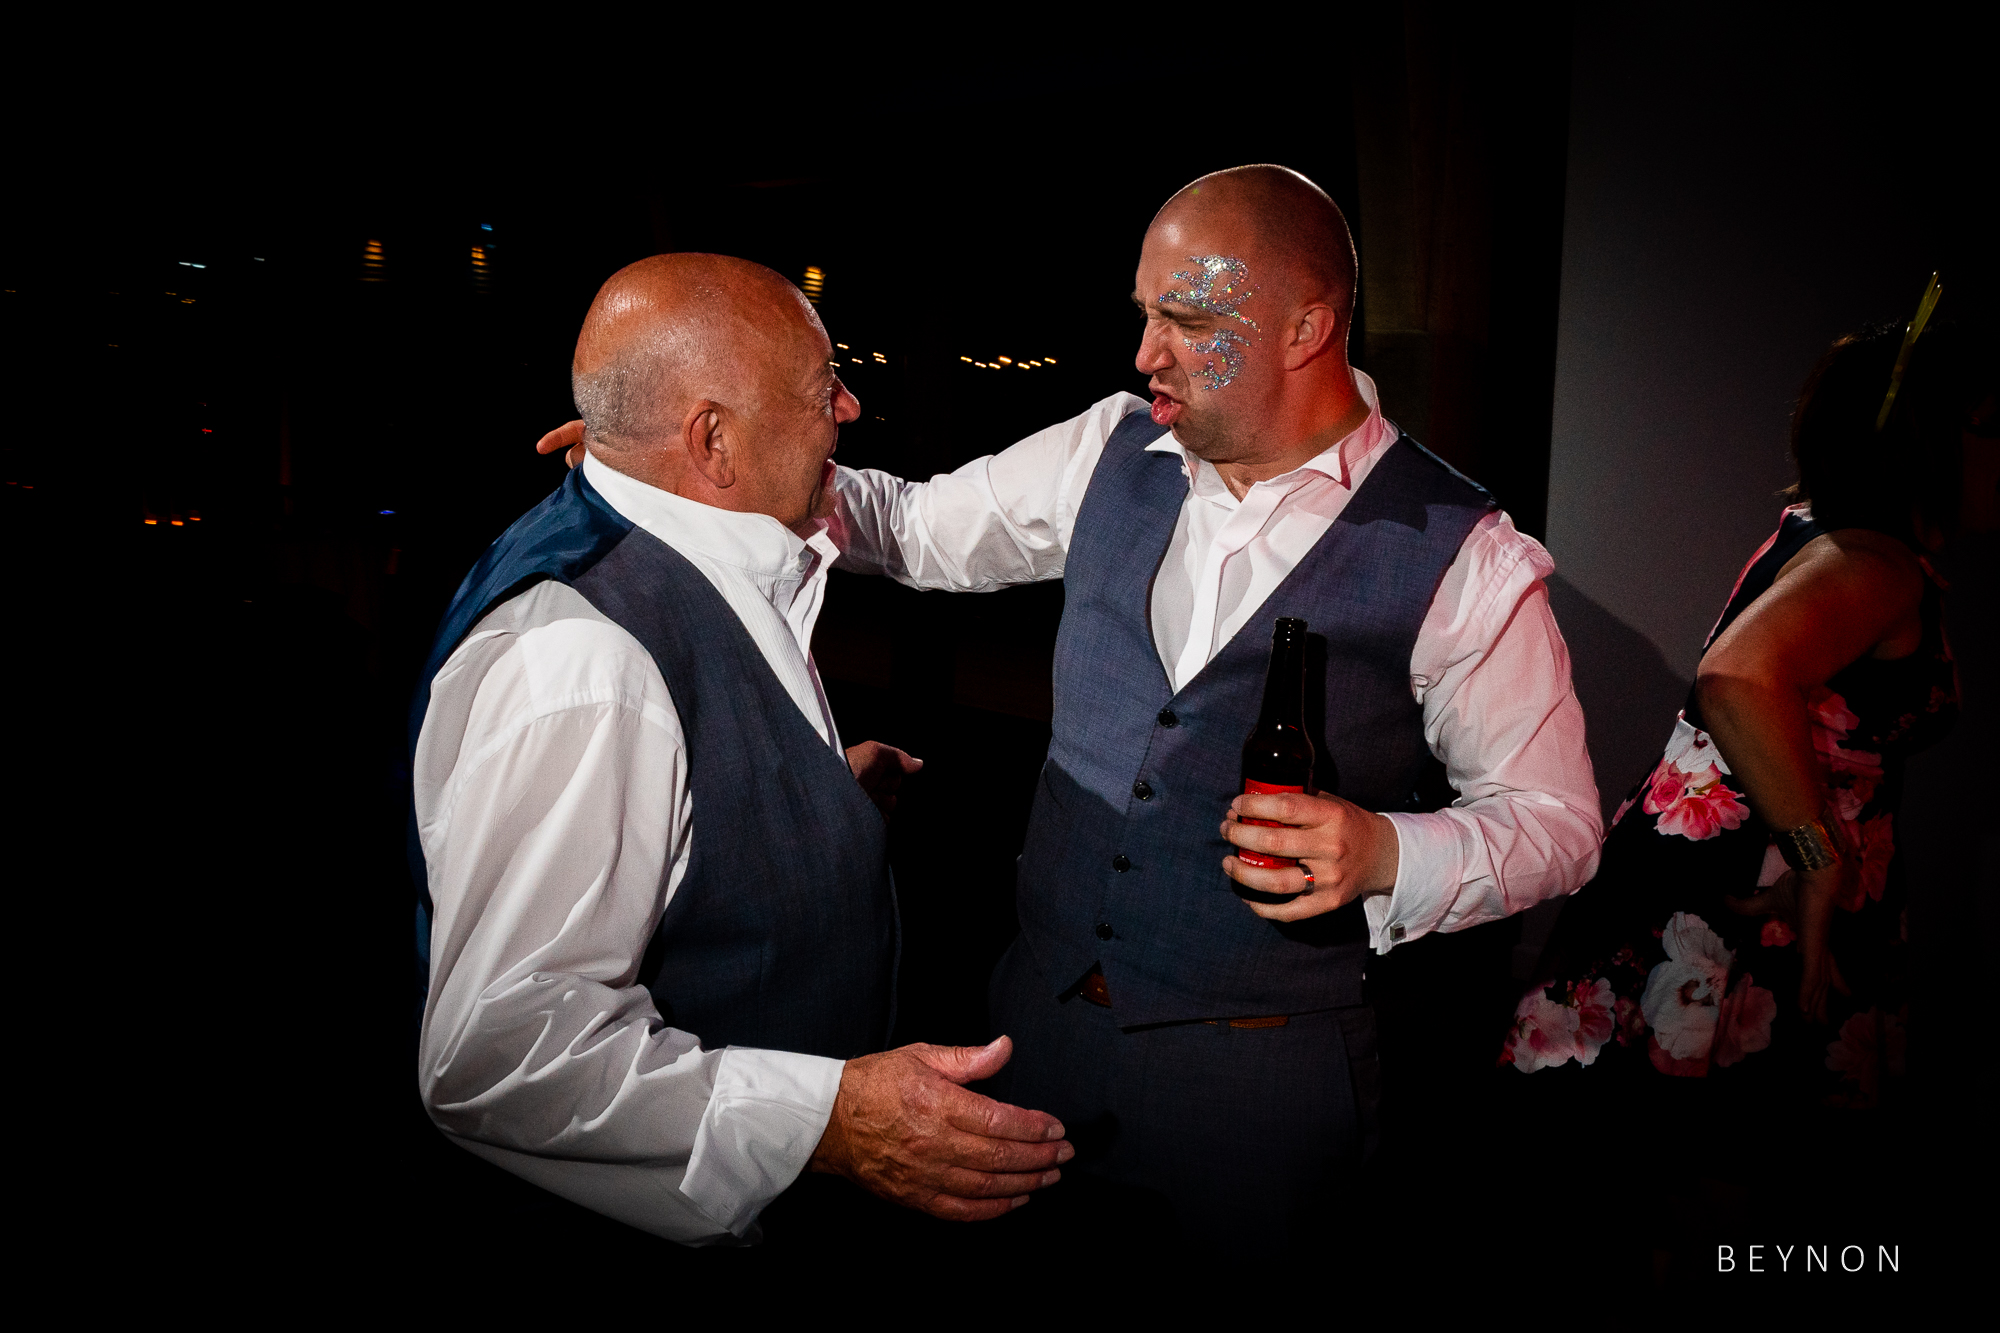 The groom and his dad dance